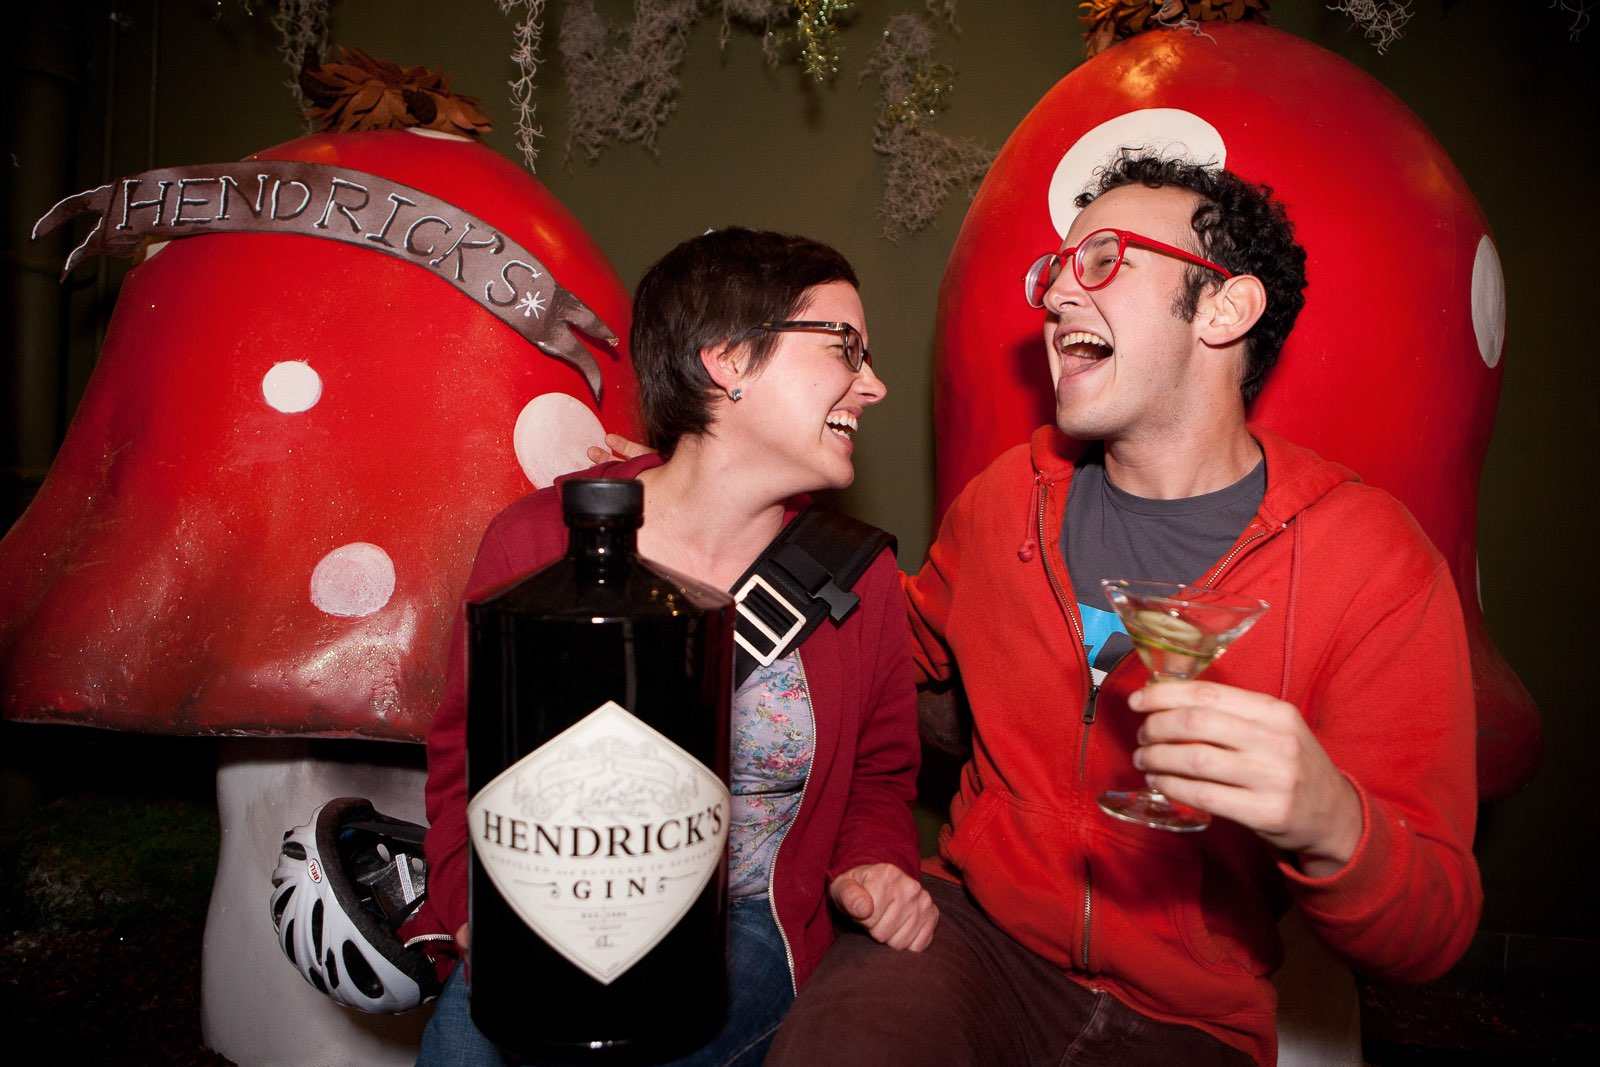 hendricks-gin-couple-laughing-cheers Eat and Drink